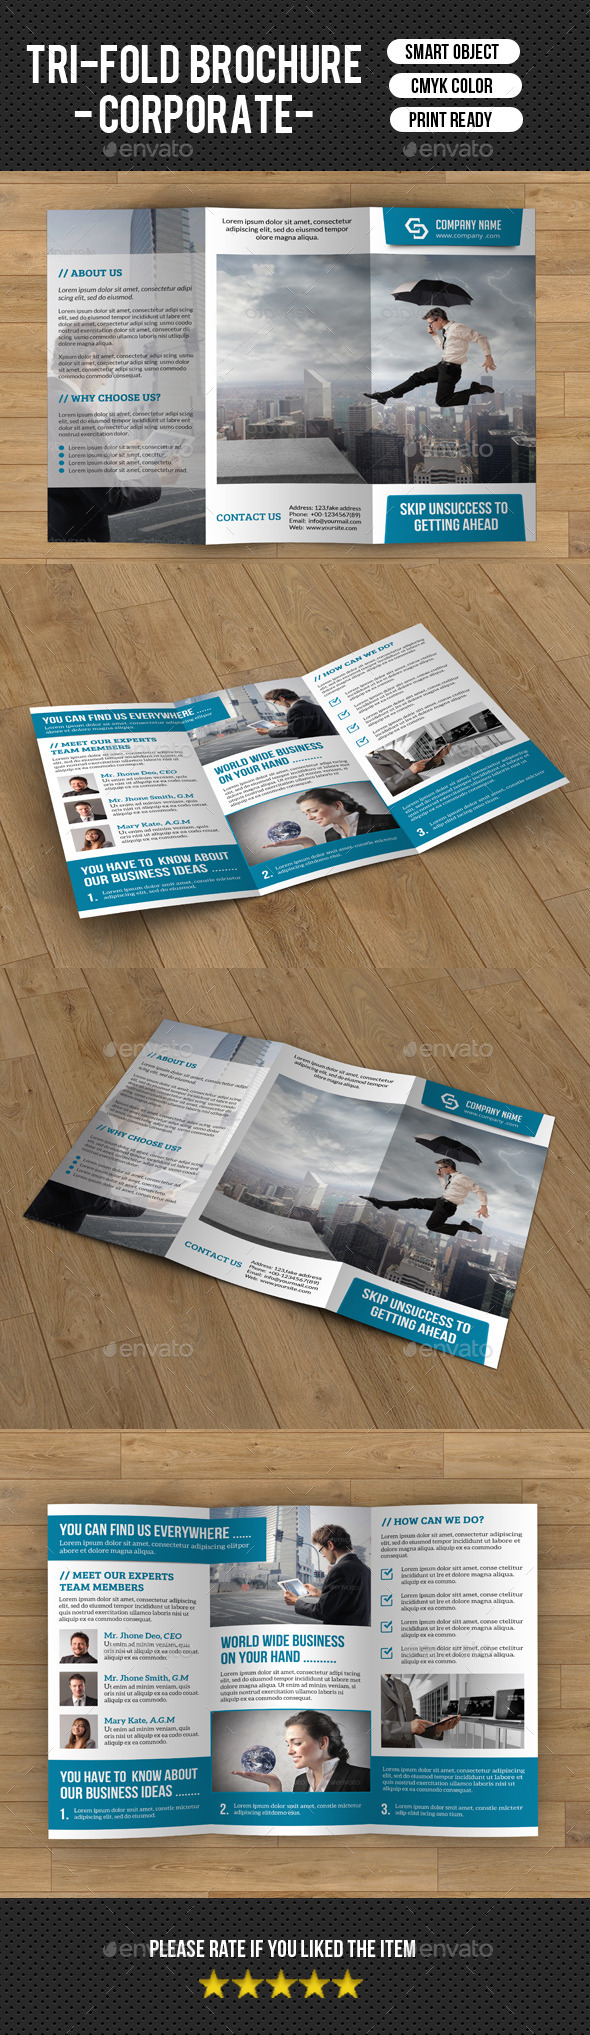 Trifold Corporate Brochure Template-v189